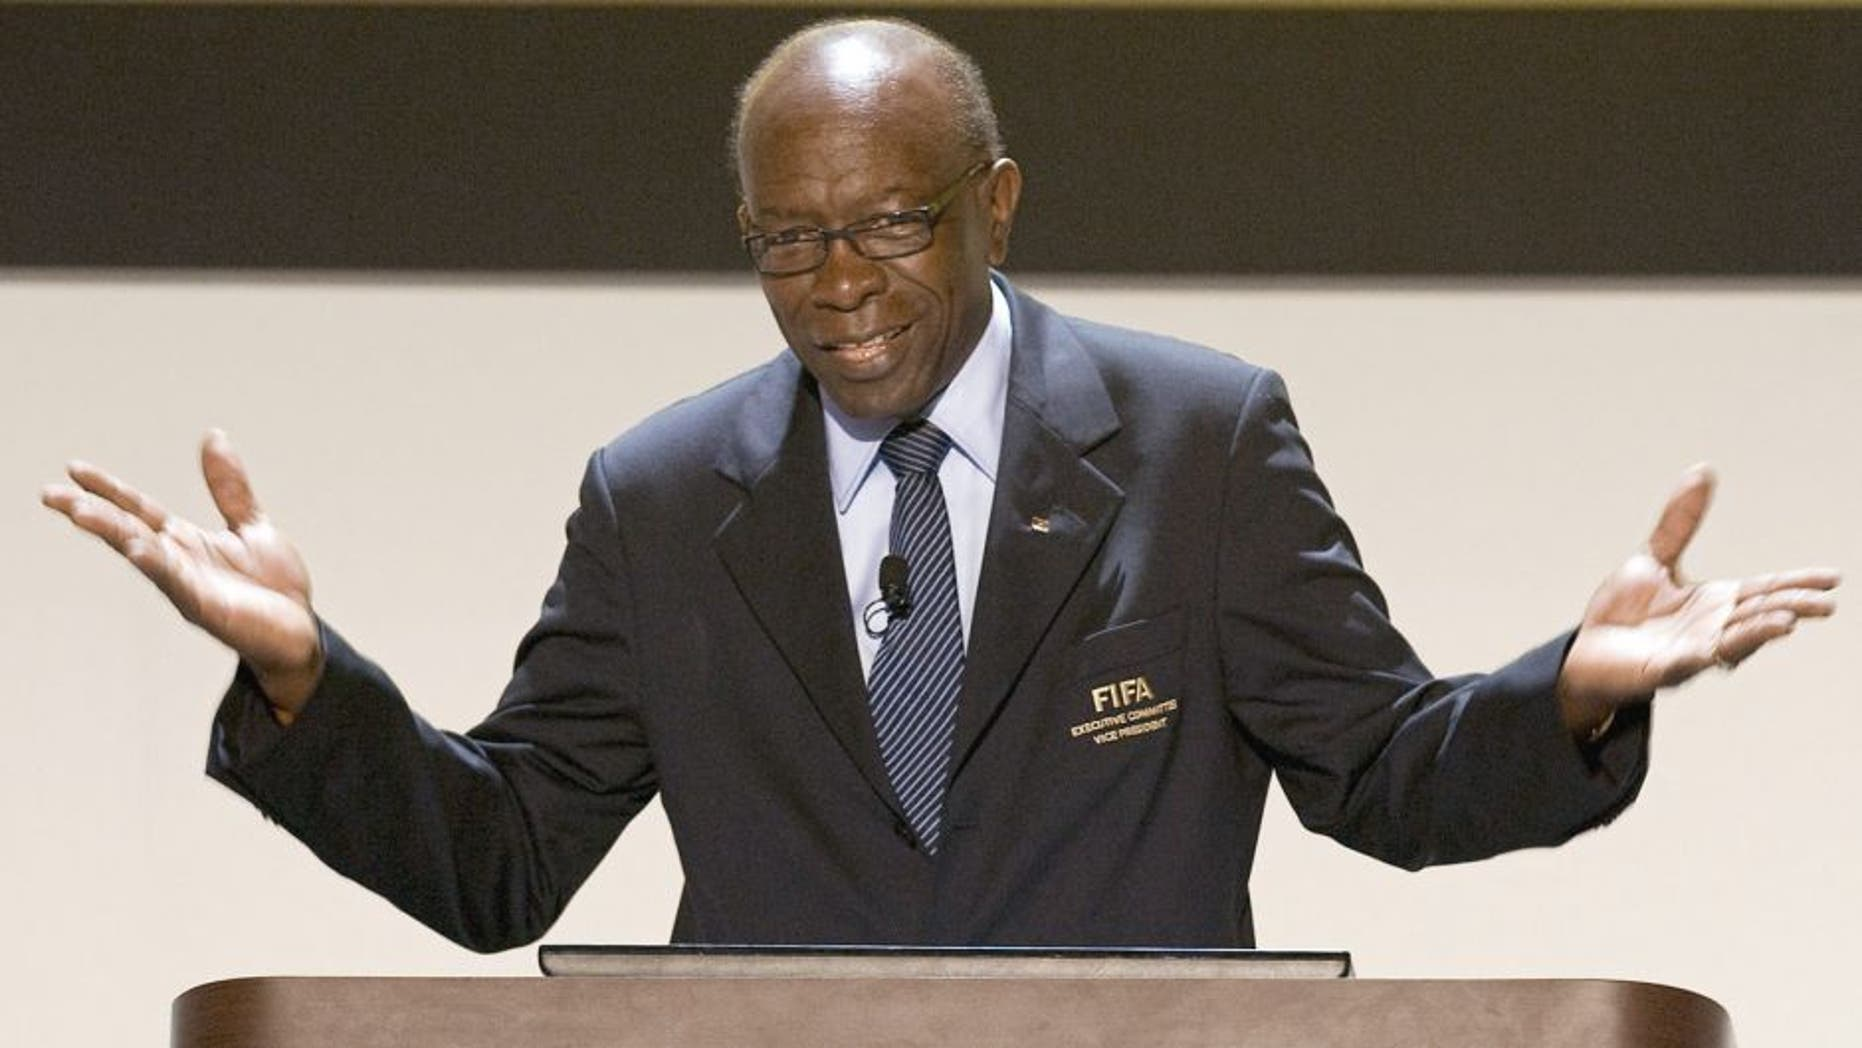 A picture taken on April 27, 2011 shows FIFA's vice-president Jack Warner in Cartagena. Jack Warner, the central figure in recent bribery allegations, has resigned from his post, world football's governing body confirmed on June 20, 2011. AFP PHOTO / Luis Acosta (Photo credit should read LUIS ACOSTA/AFP/Getty Images)